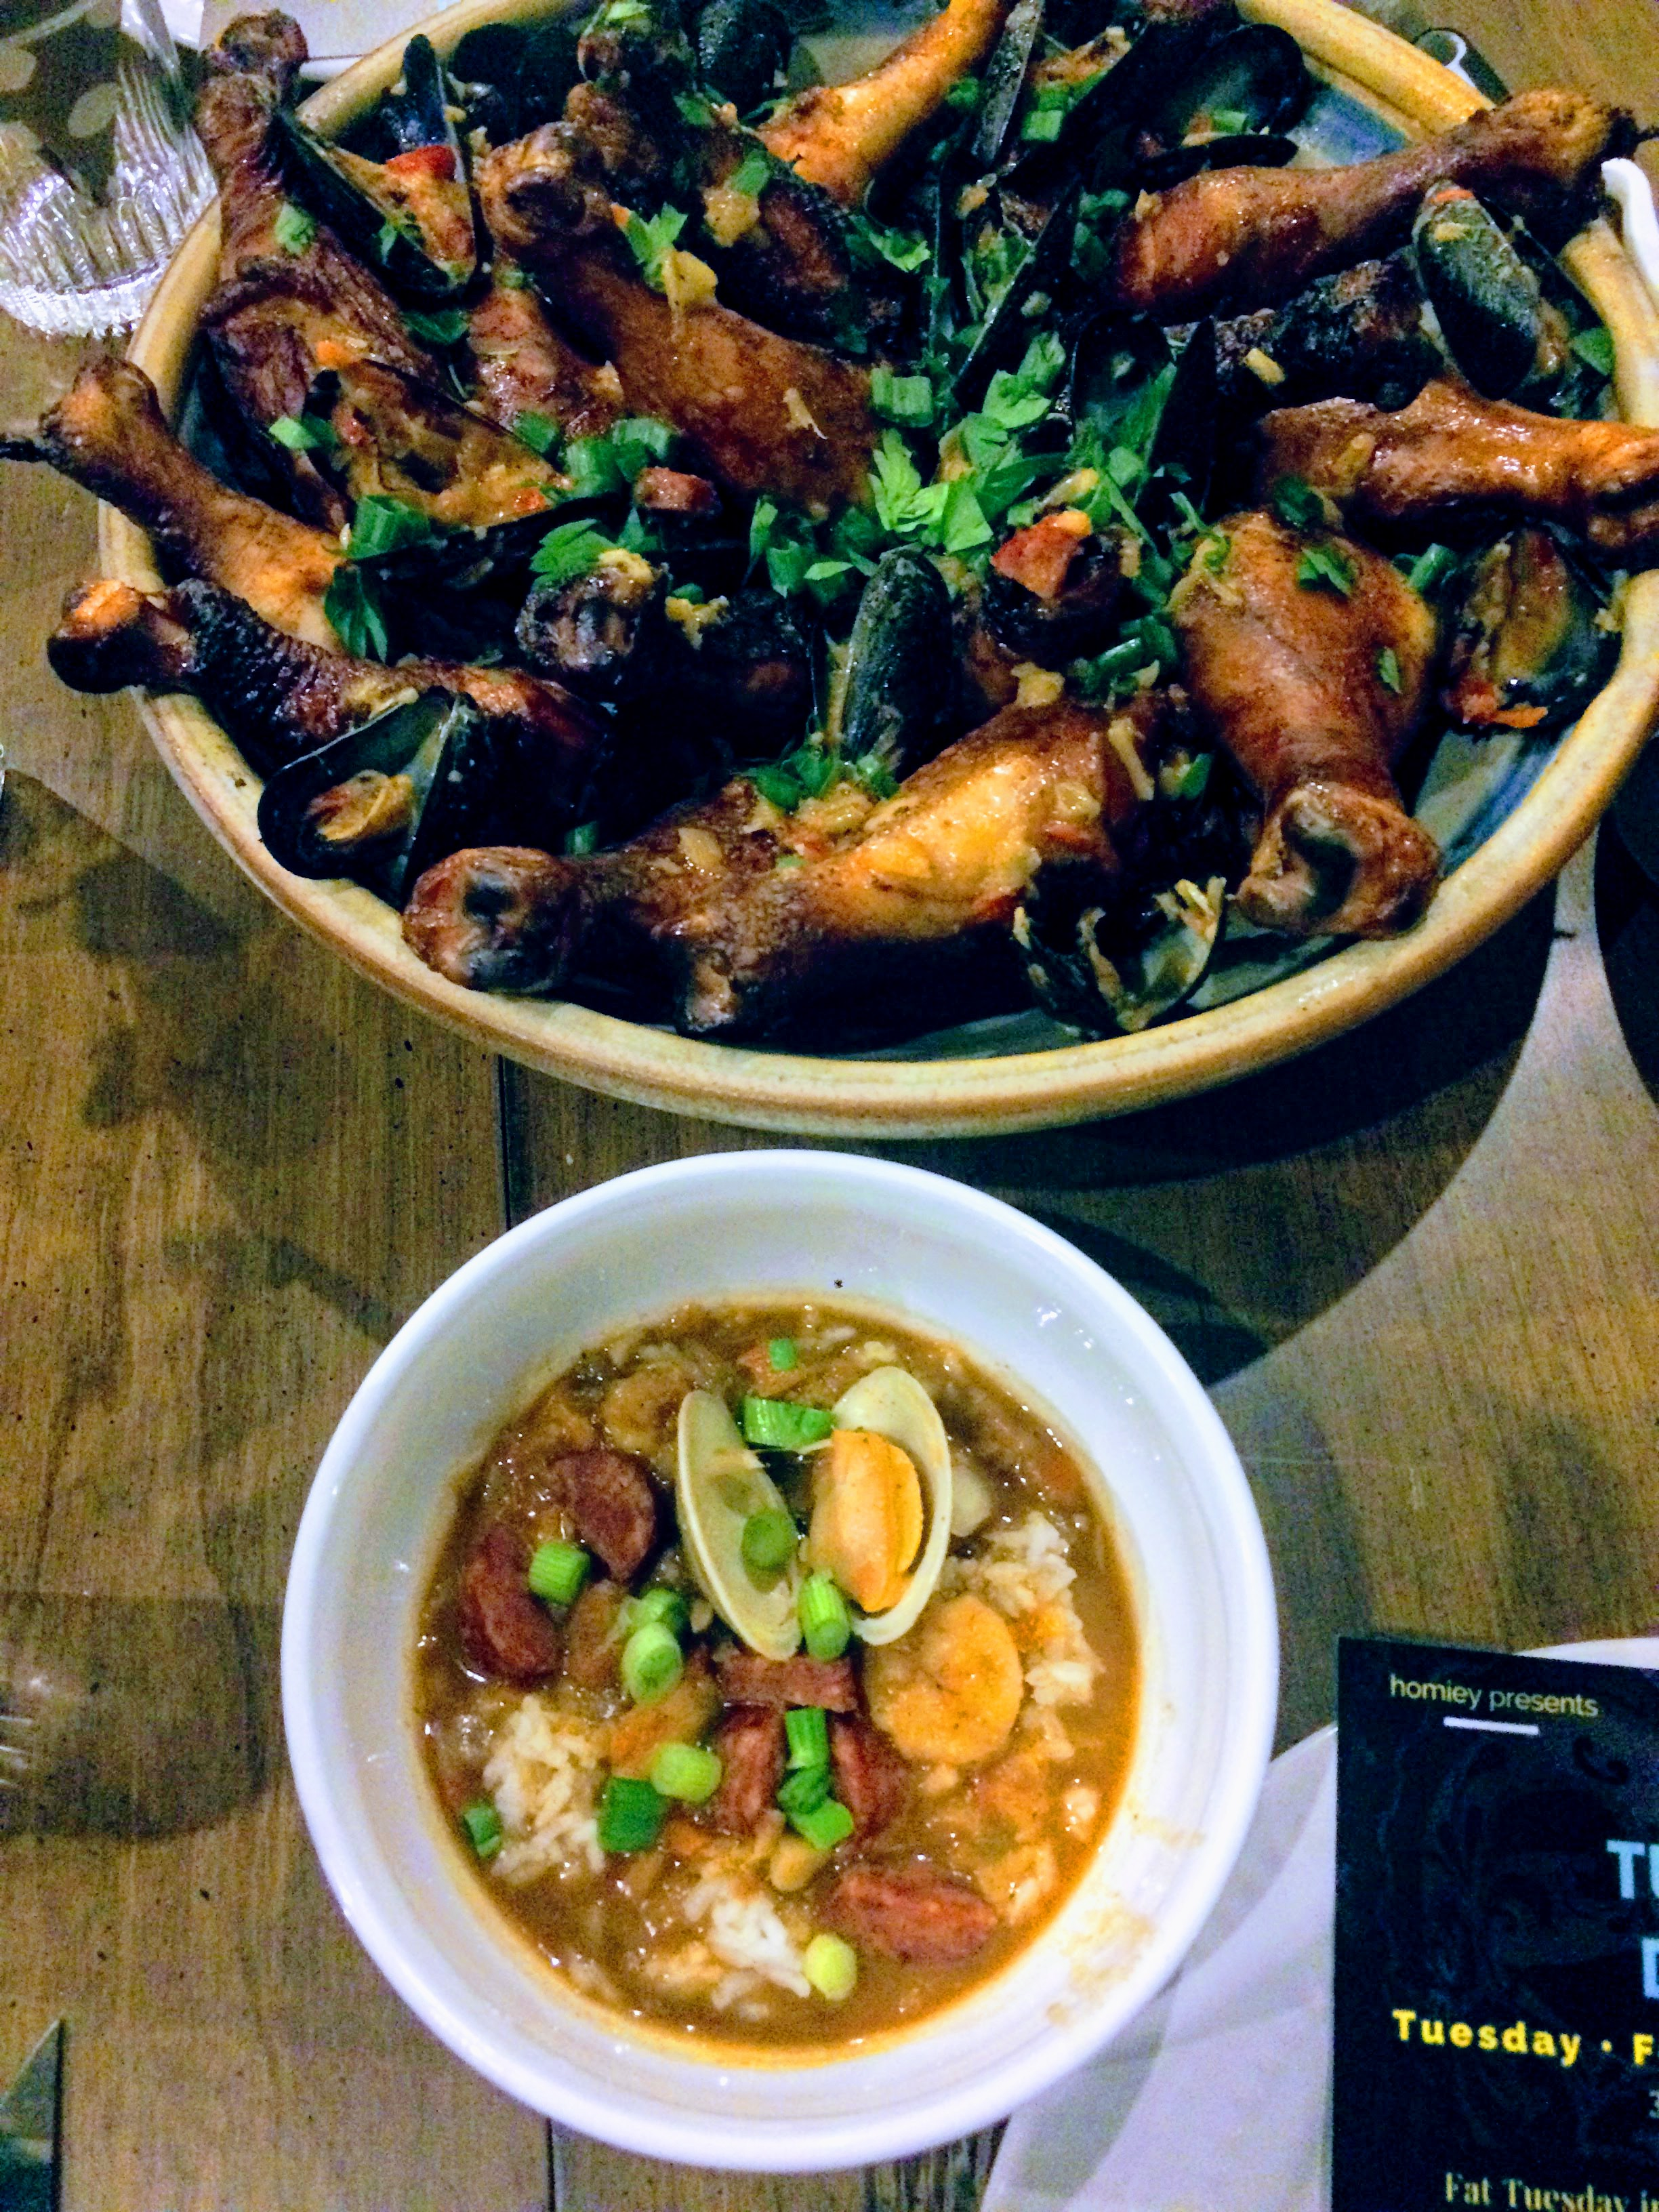 Slow smoked chicken with shrimp & andouille etouffee and gumbo.